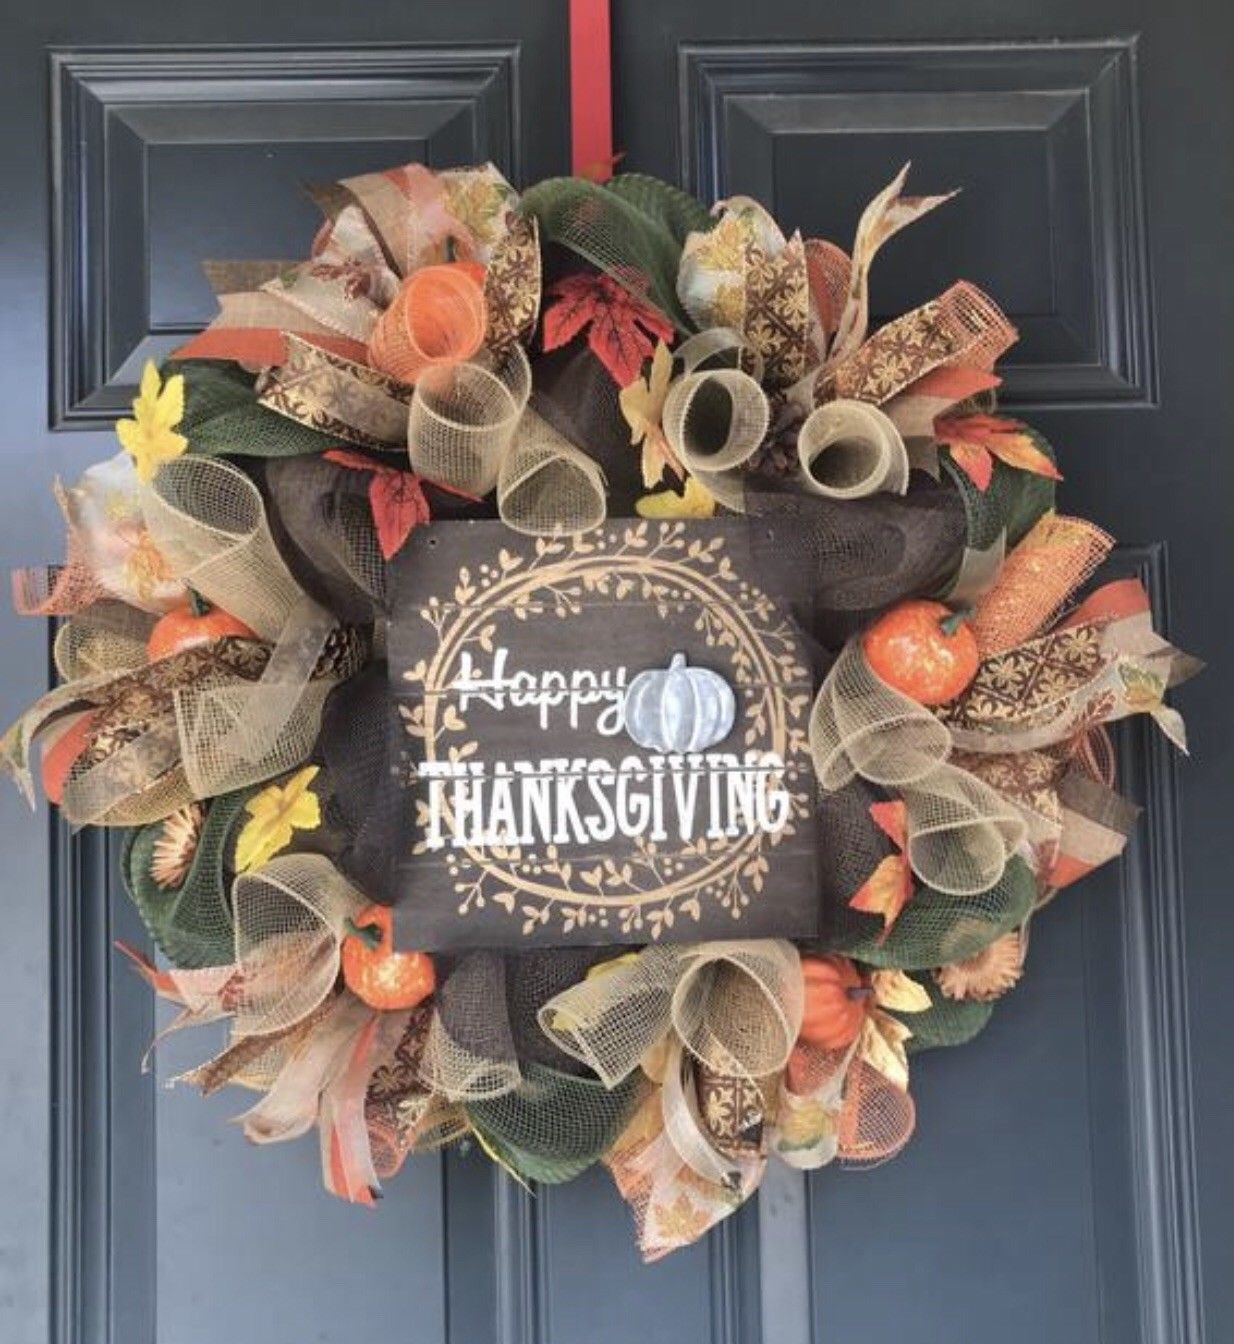 Primary image for Thanksgiving wreath, fall wreath, thanksgiving decor, rustic wreath, farm house